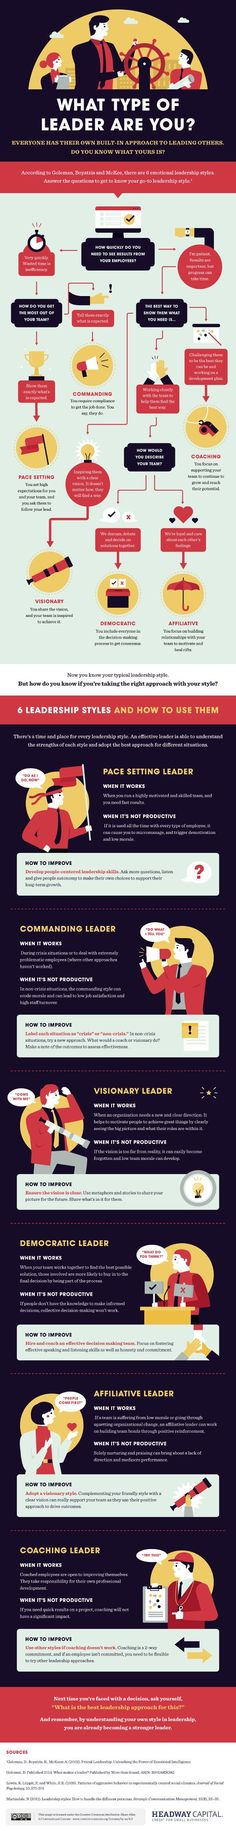 Different business leaders have different leadership styles. Which types of leaders are effective under which circumstances? And what type of leader are you? Take the quiz in this infographic to find out.